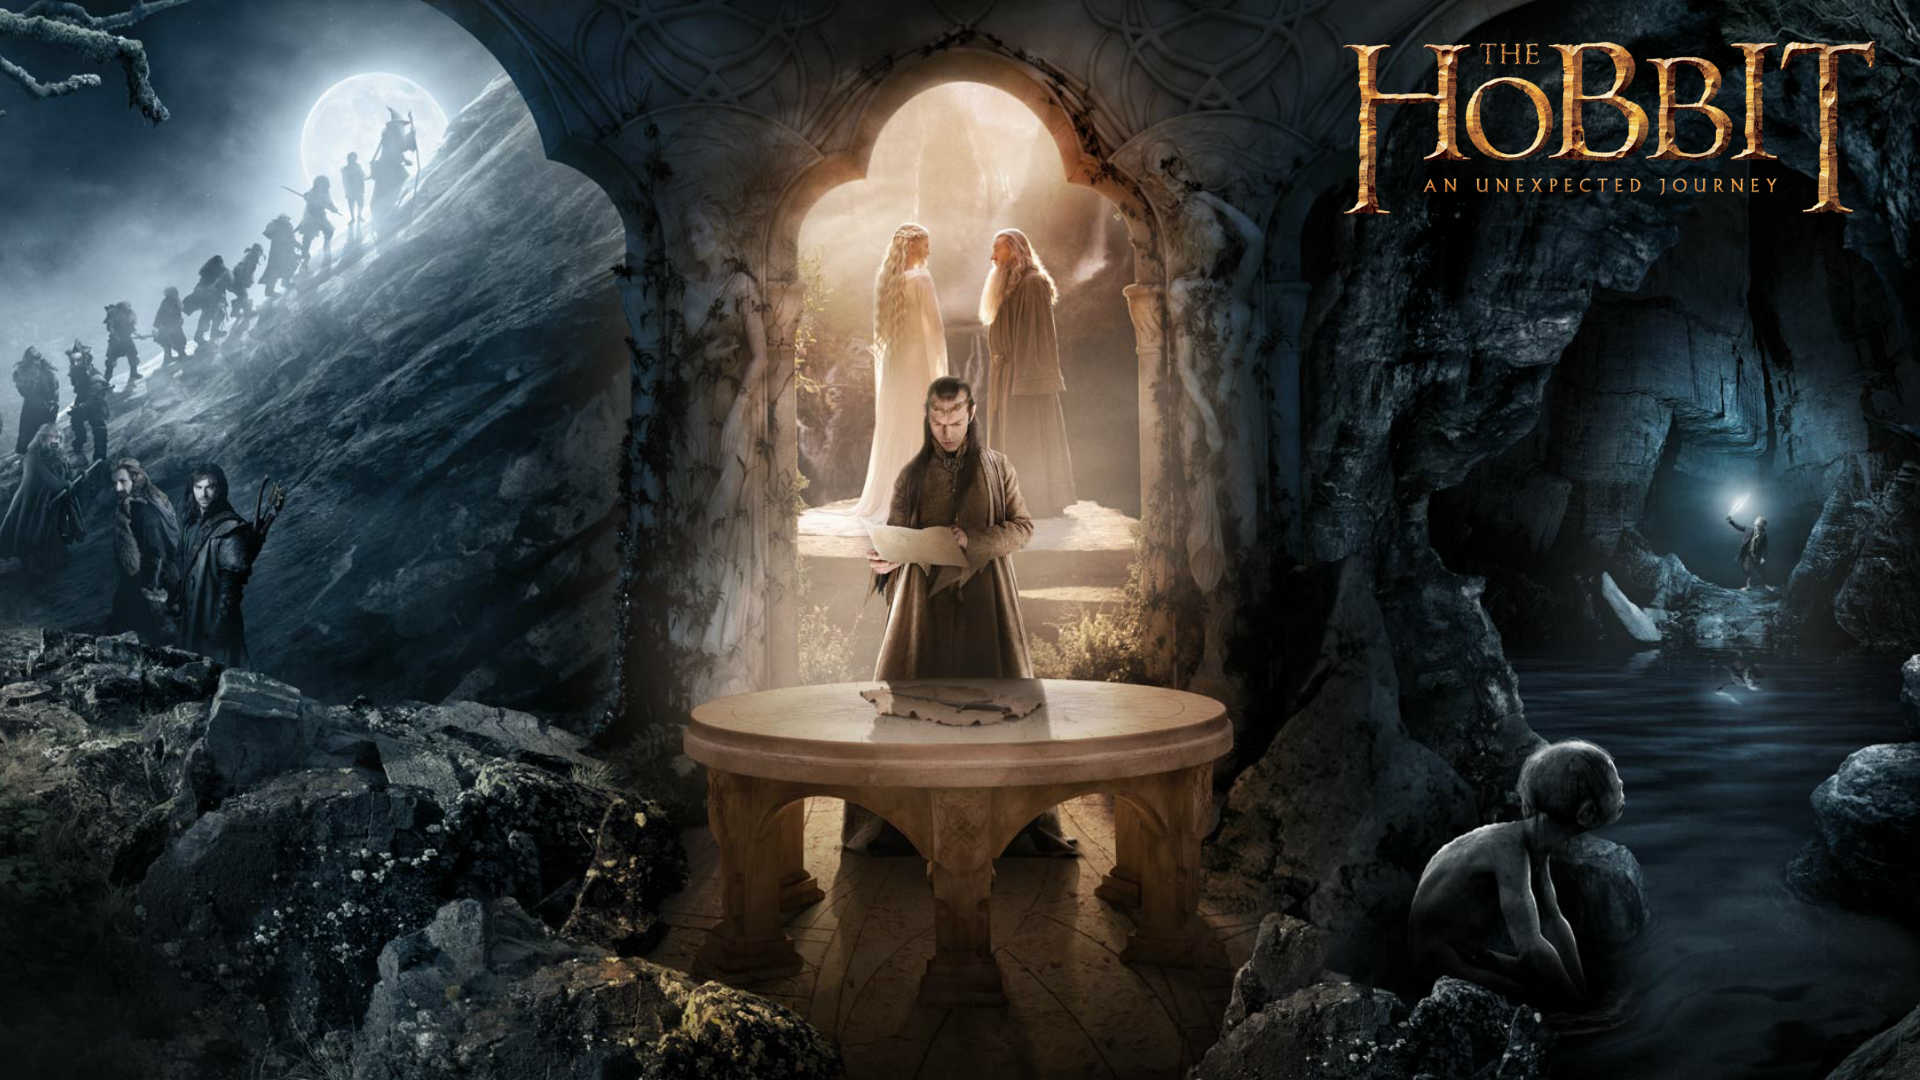 THE HOBBIT (2012) movie review | Splatter: on FILM